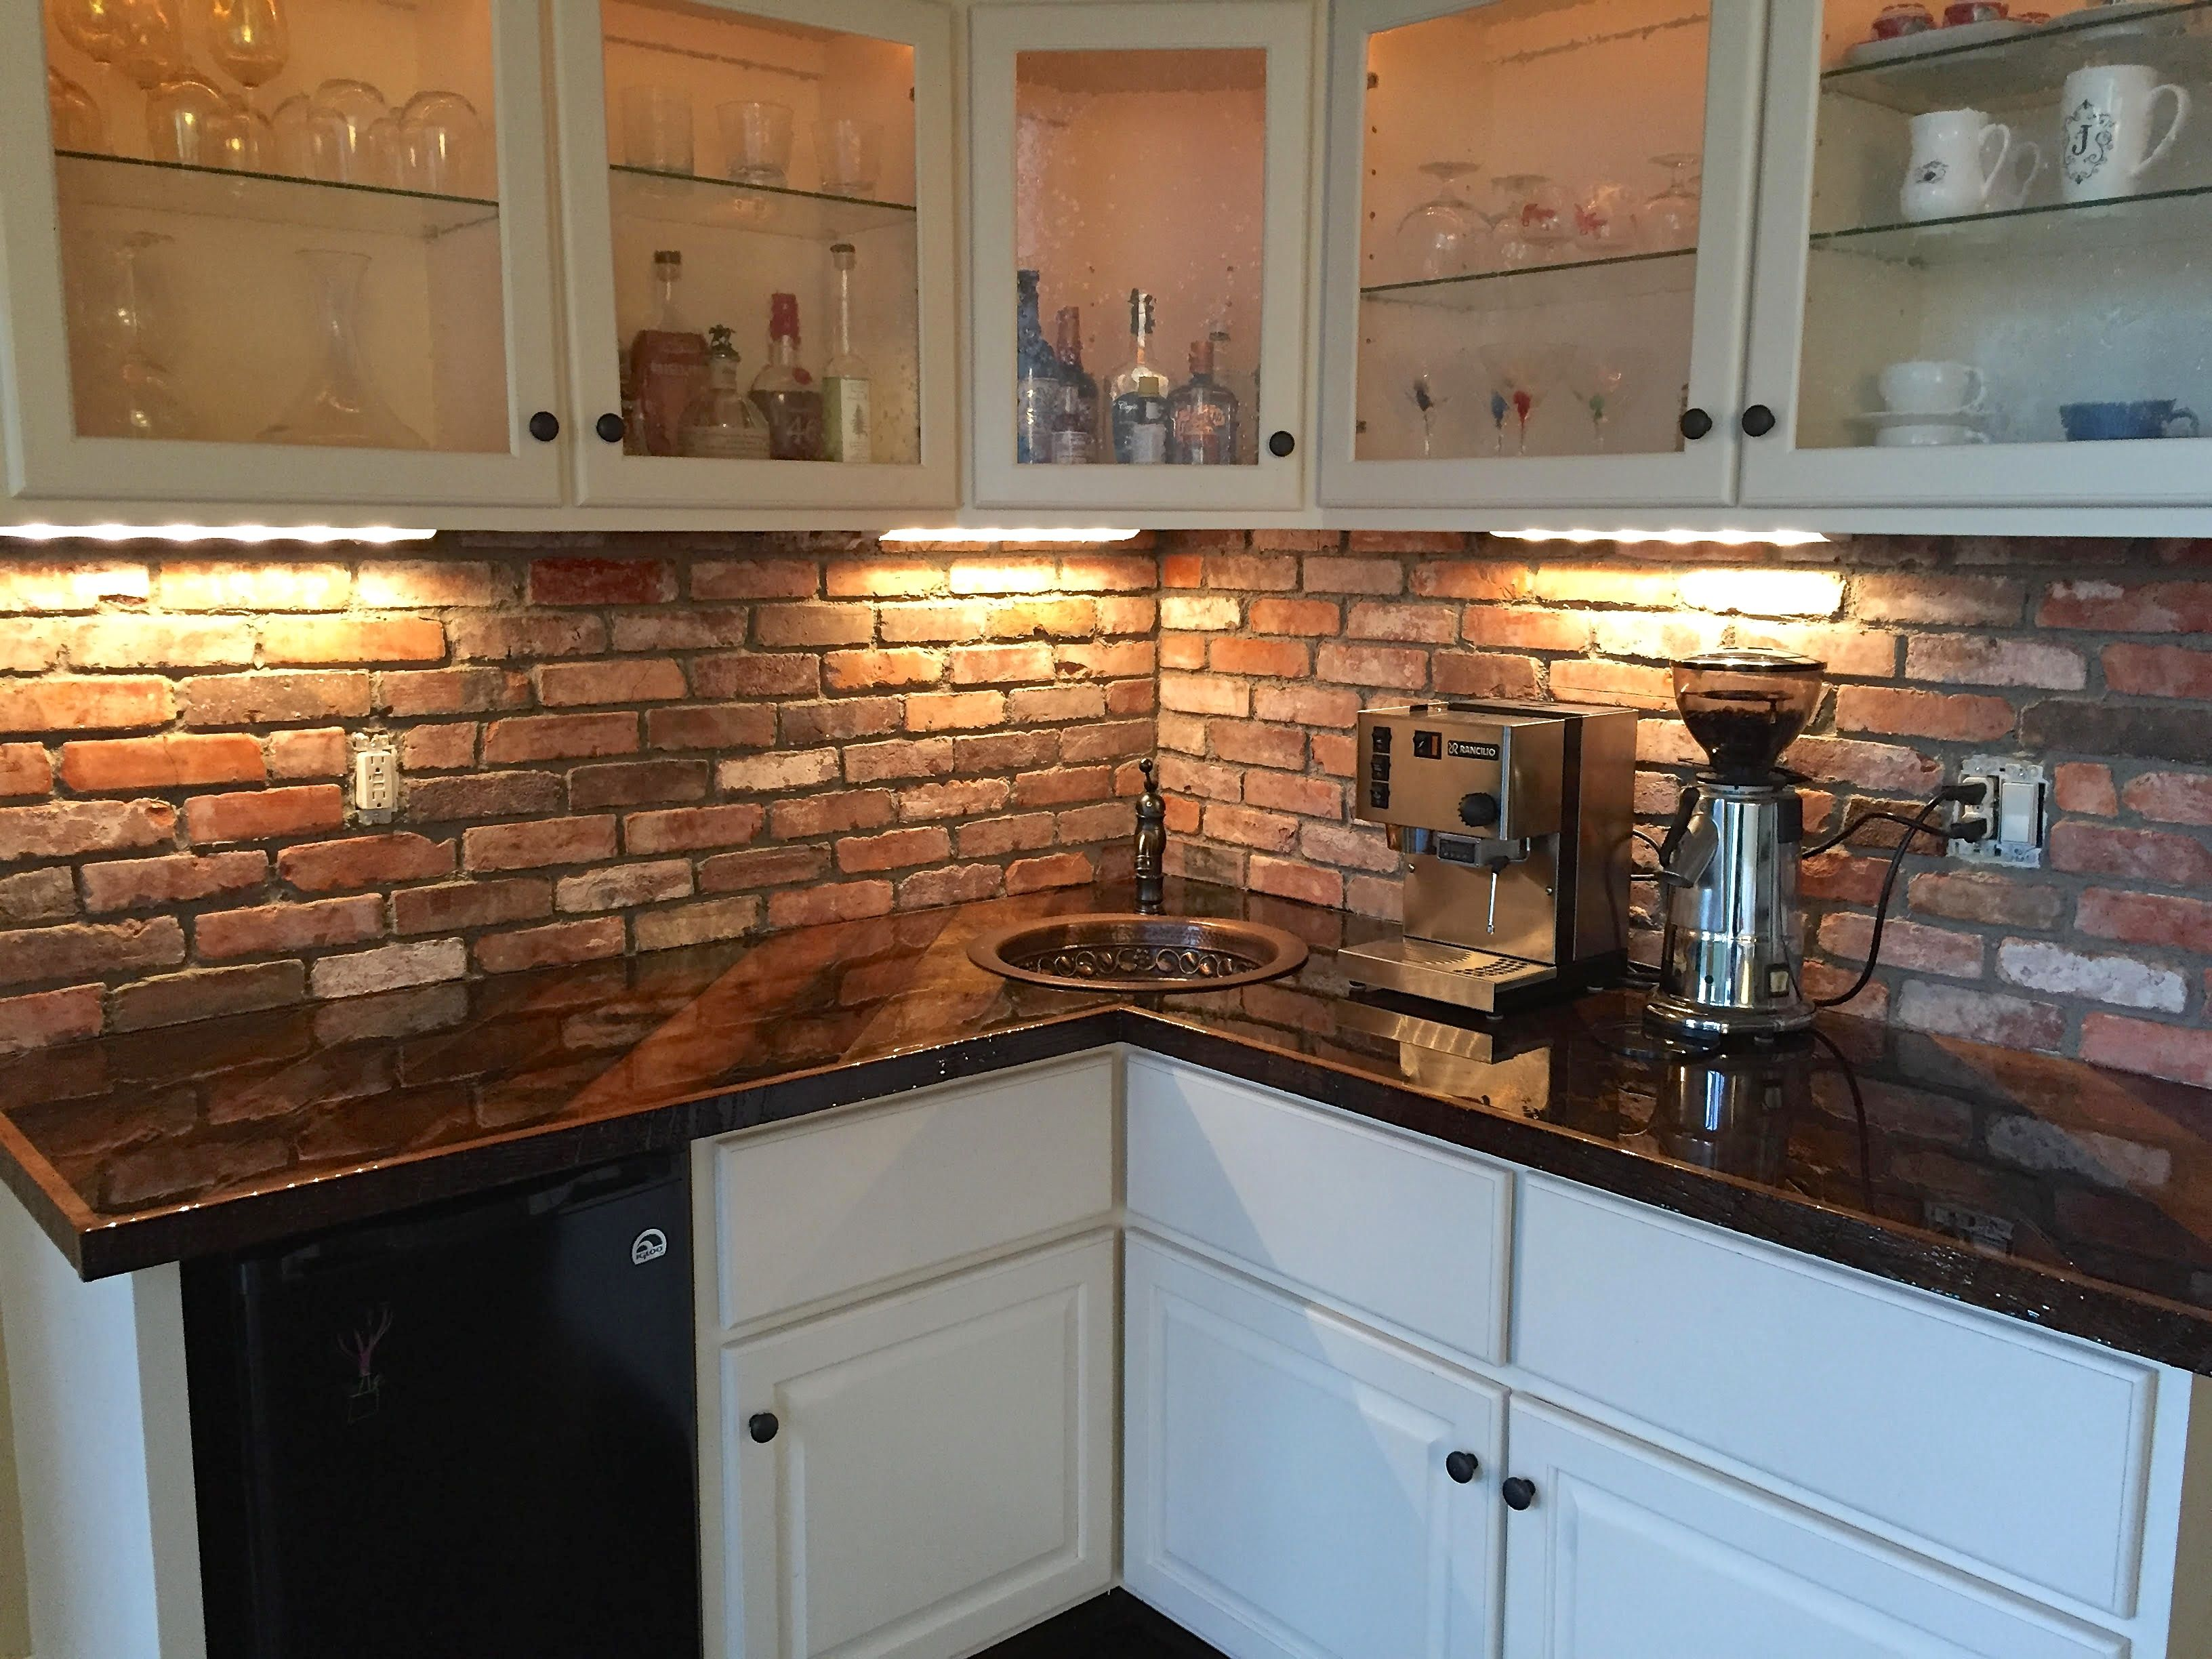 Thin Brick Tile Backsplash Installed In Kitchen A Similar Look Can Be Achieved With Our Fremont Col Brick Tiles Kitchen Brick Kitchen Brick Backsplash Kitchen